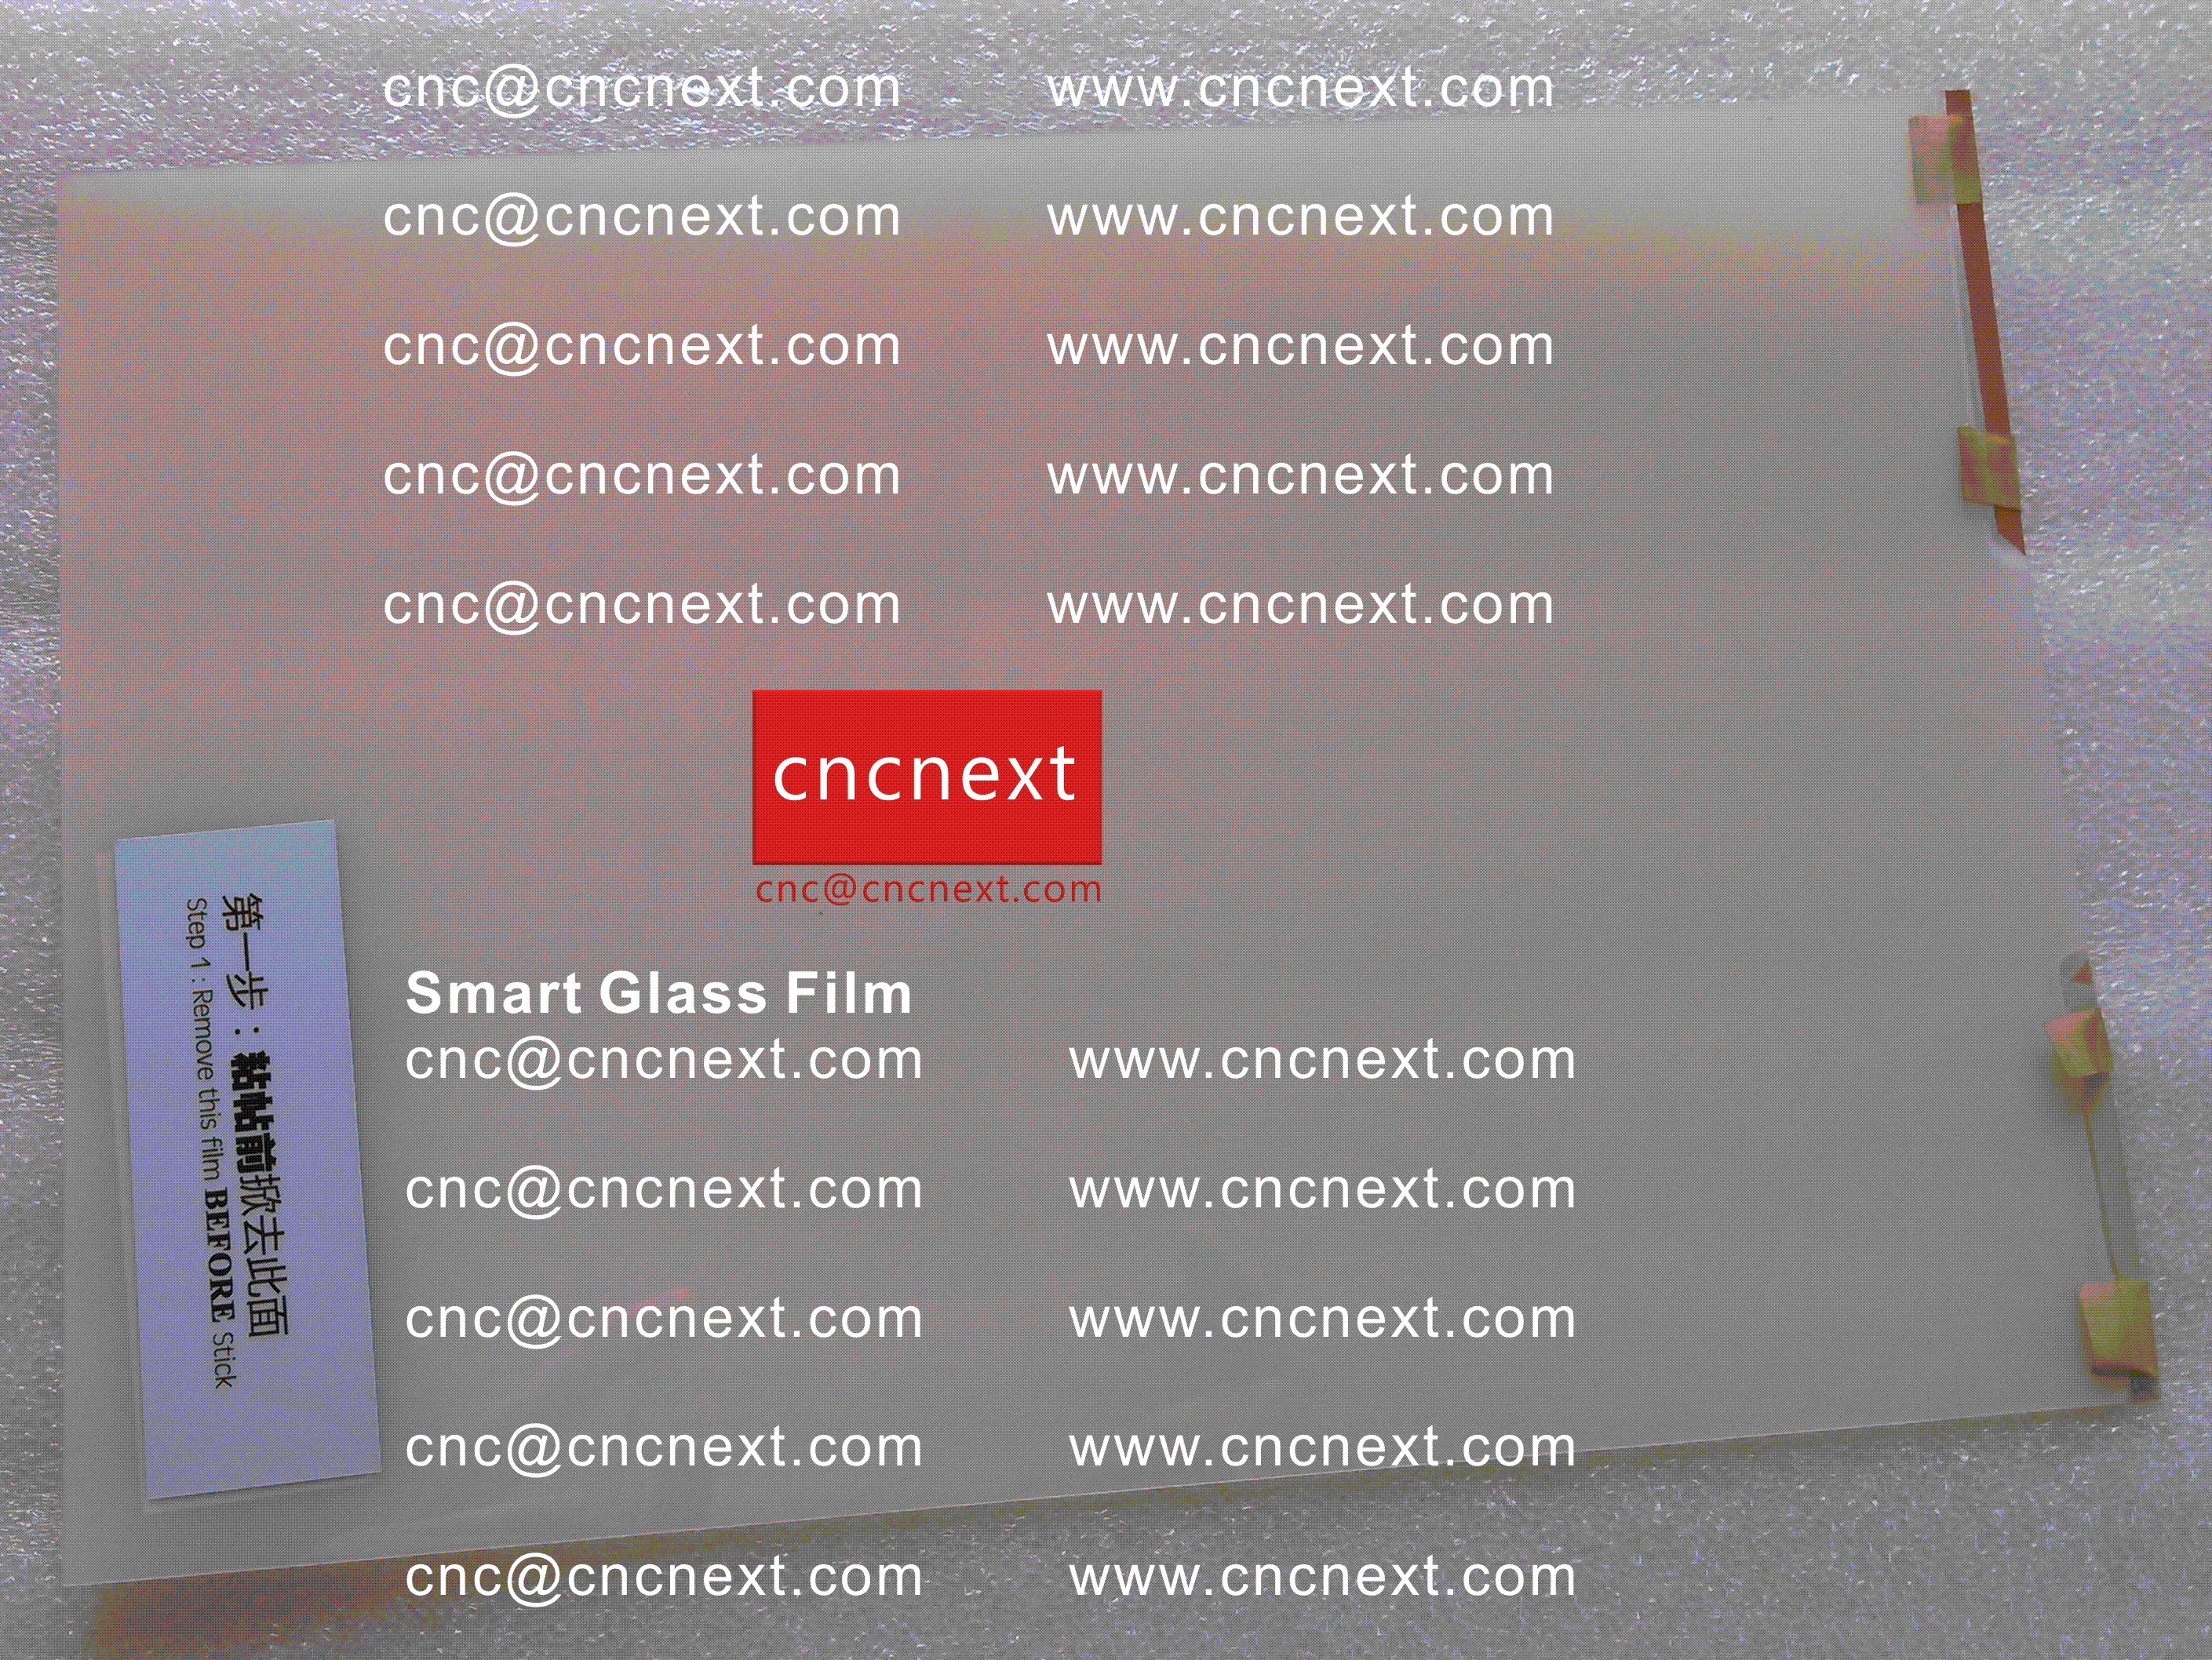 004 Smart Glass Film Samples